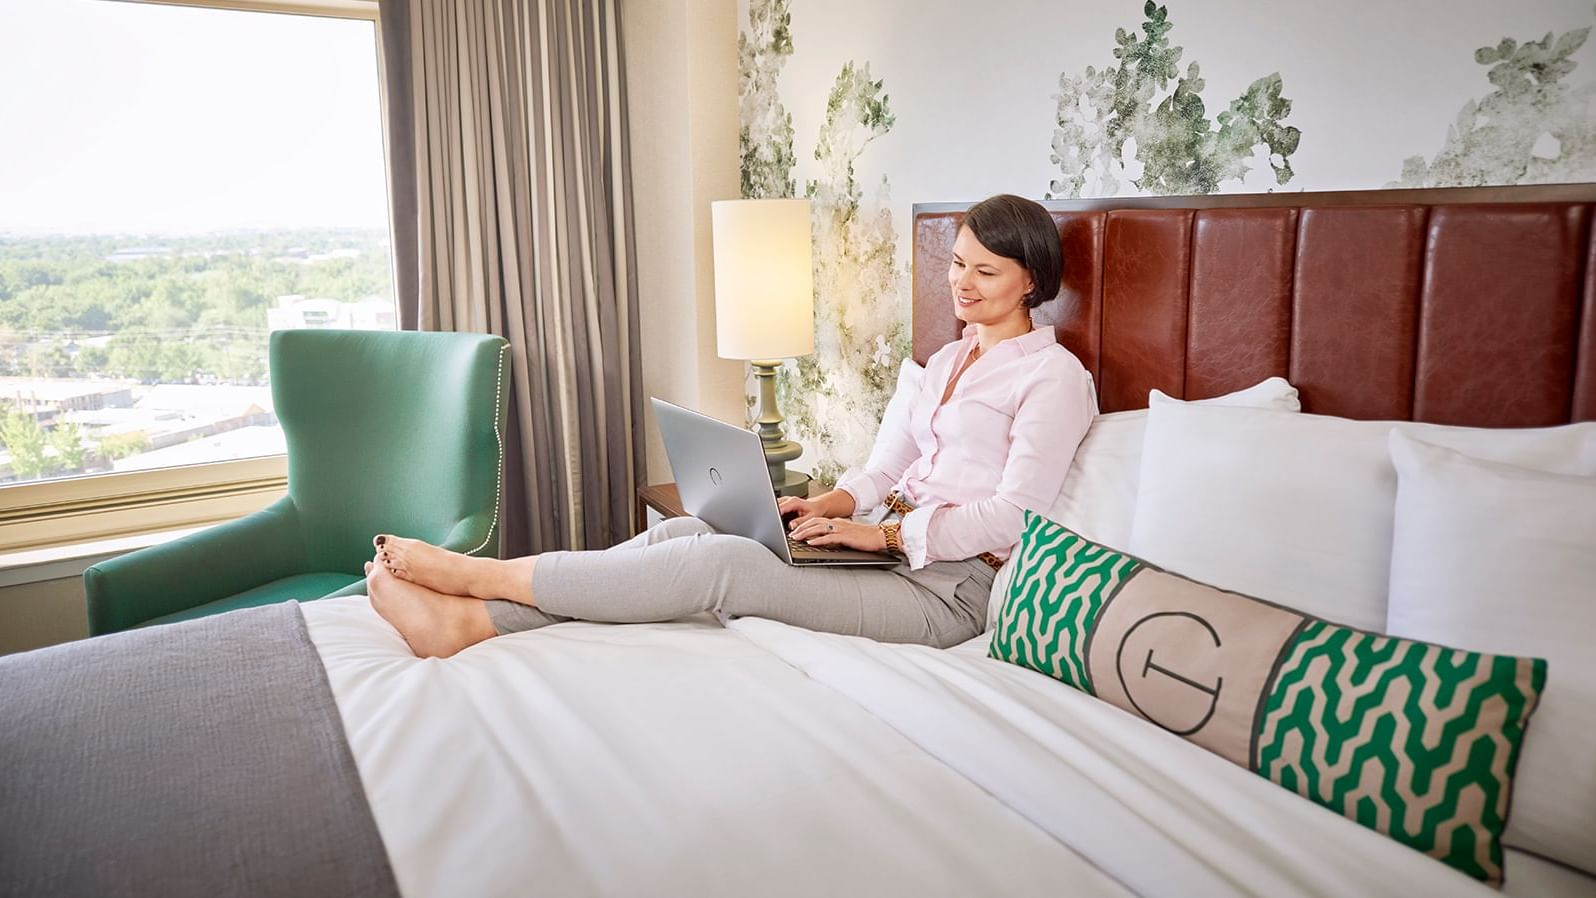 a woman sitting on a bed using a laptop